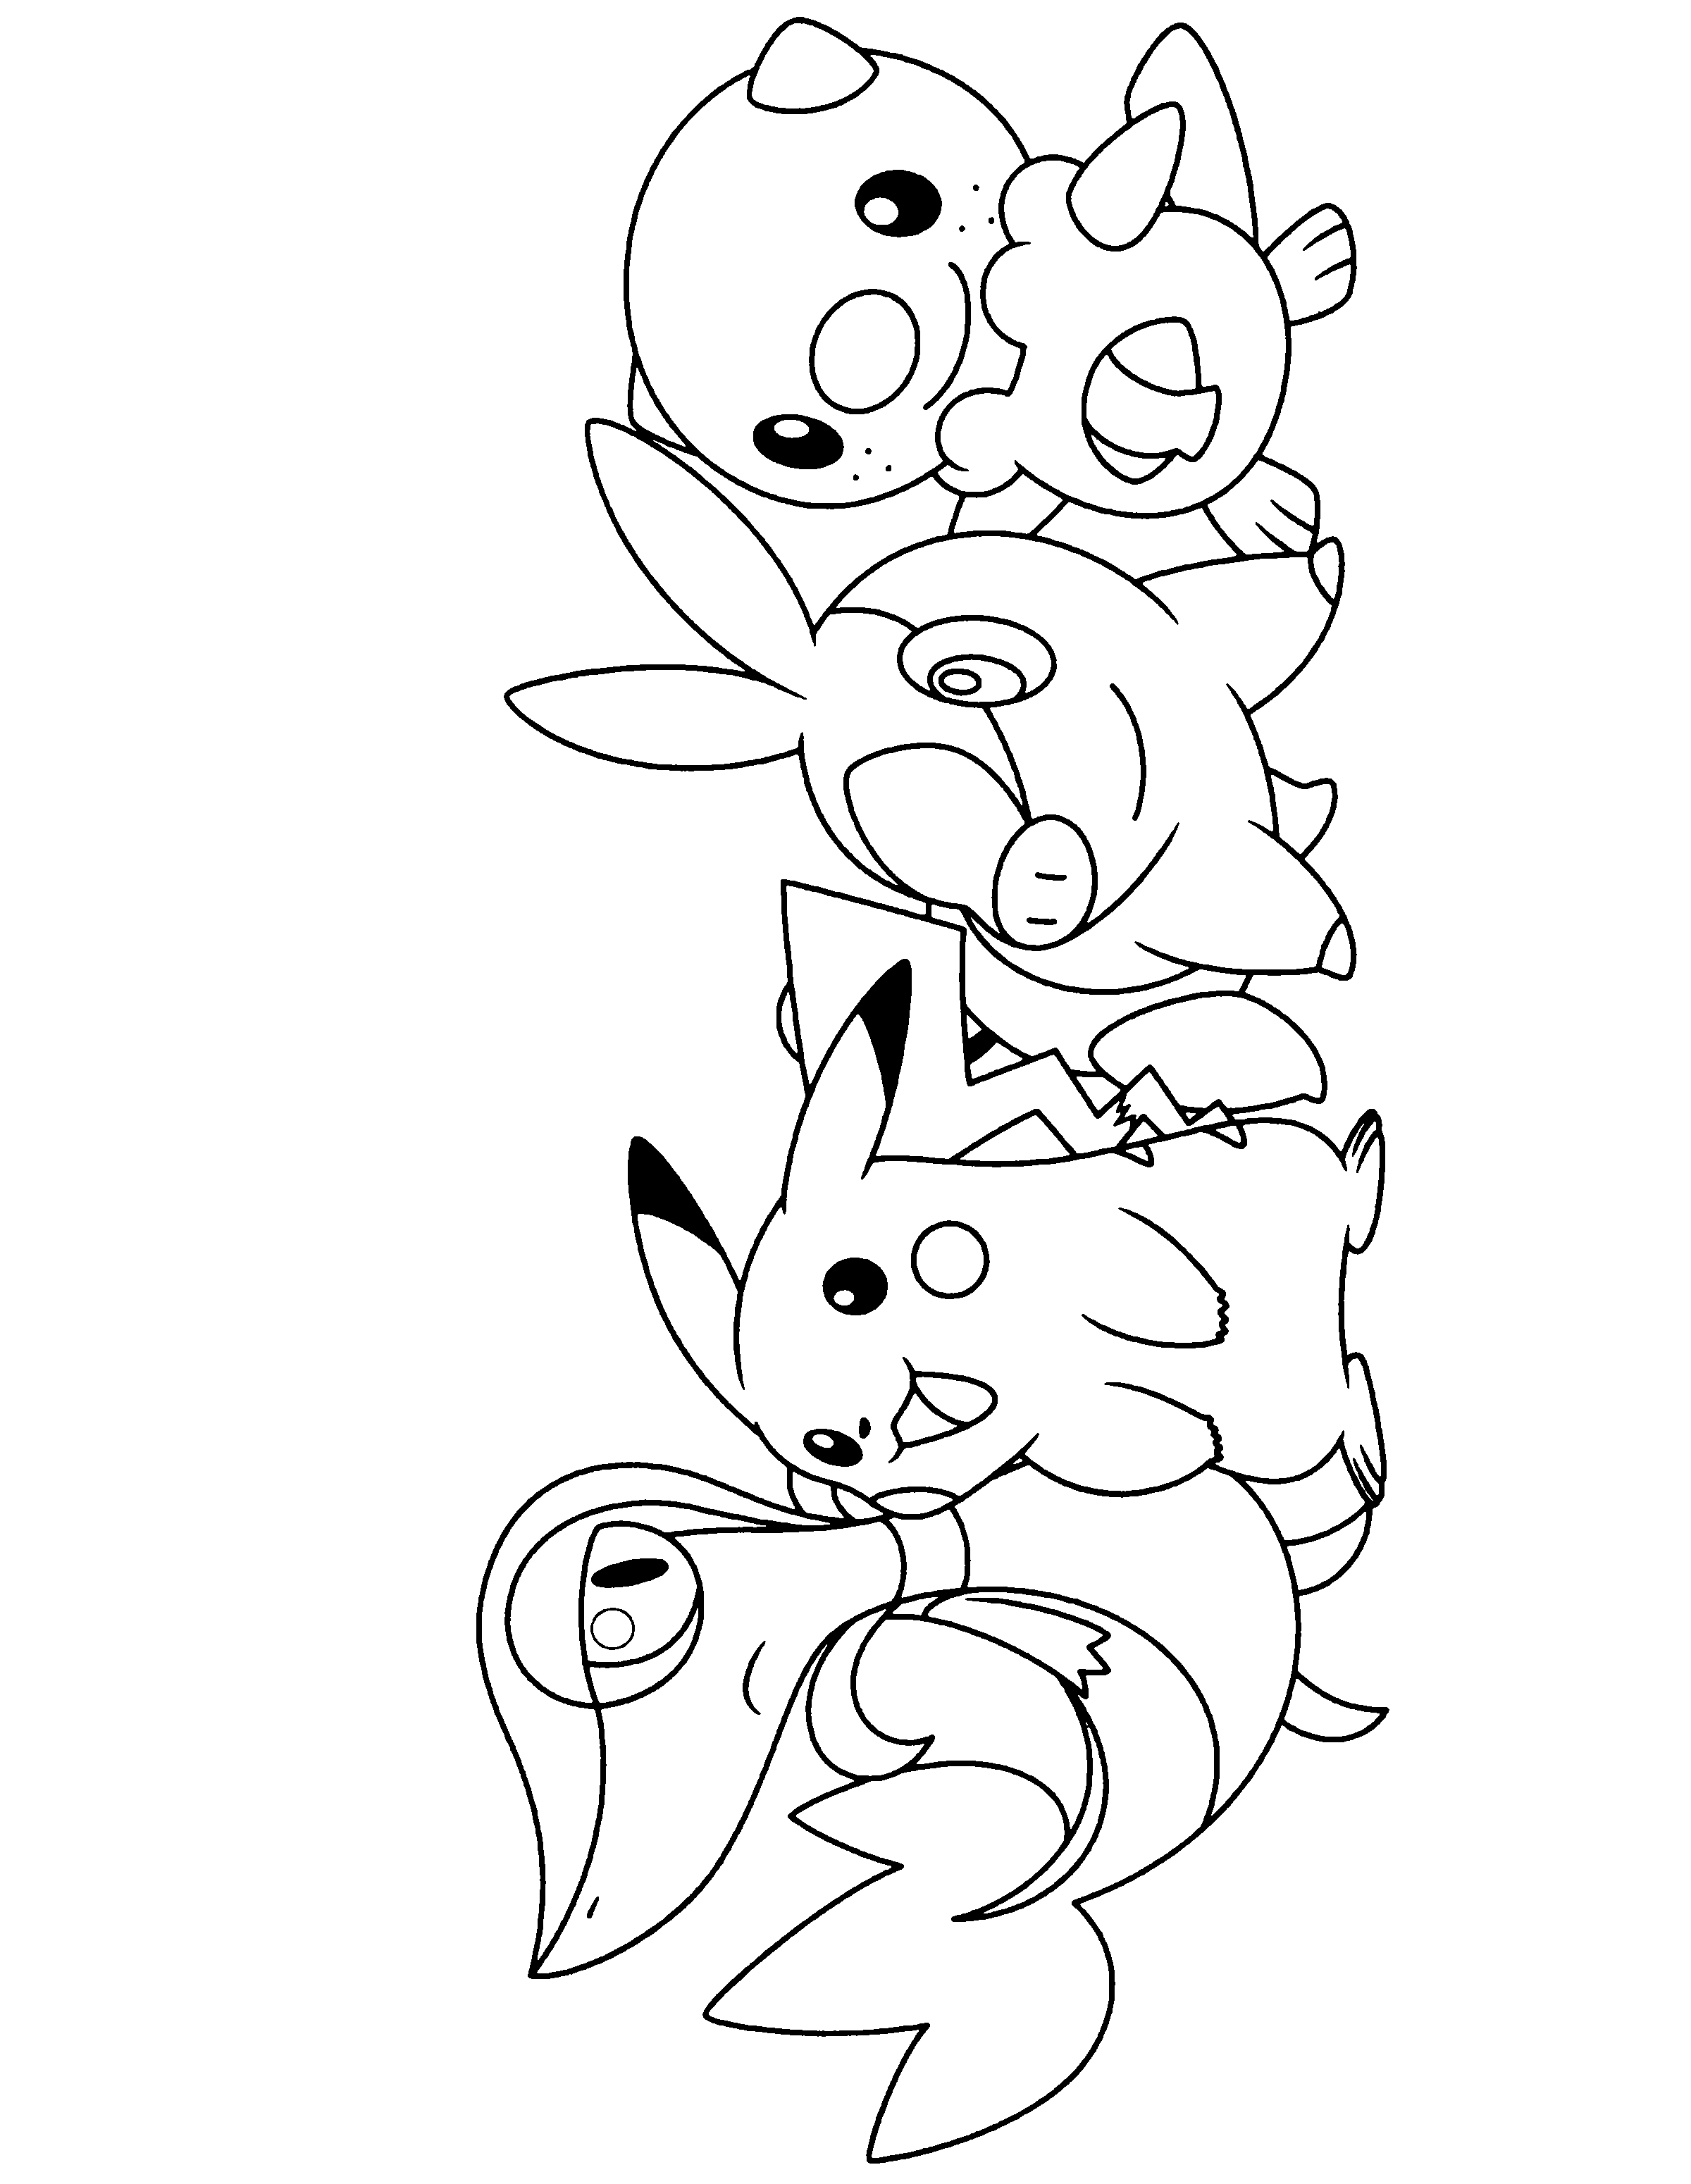 Pokemon Black And White Coloring Pages - Google Search | Coloring - Free Printable Coloring Pages Pokemon Black White